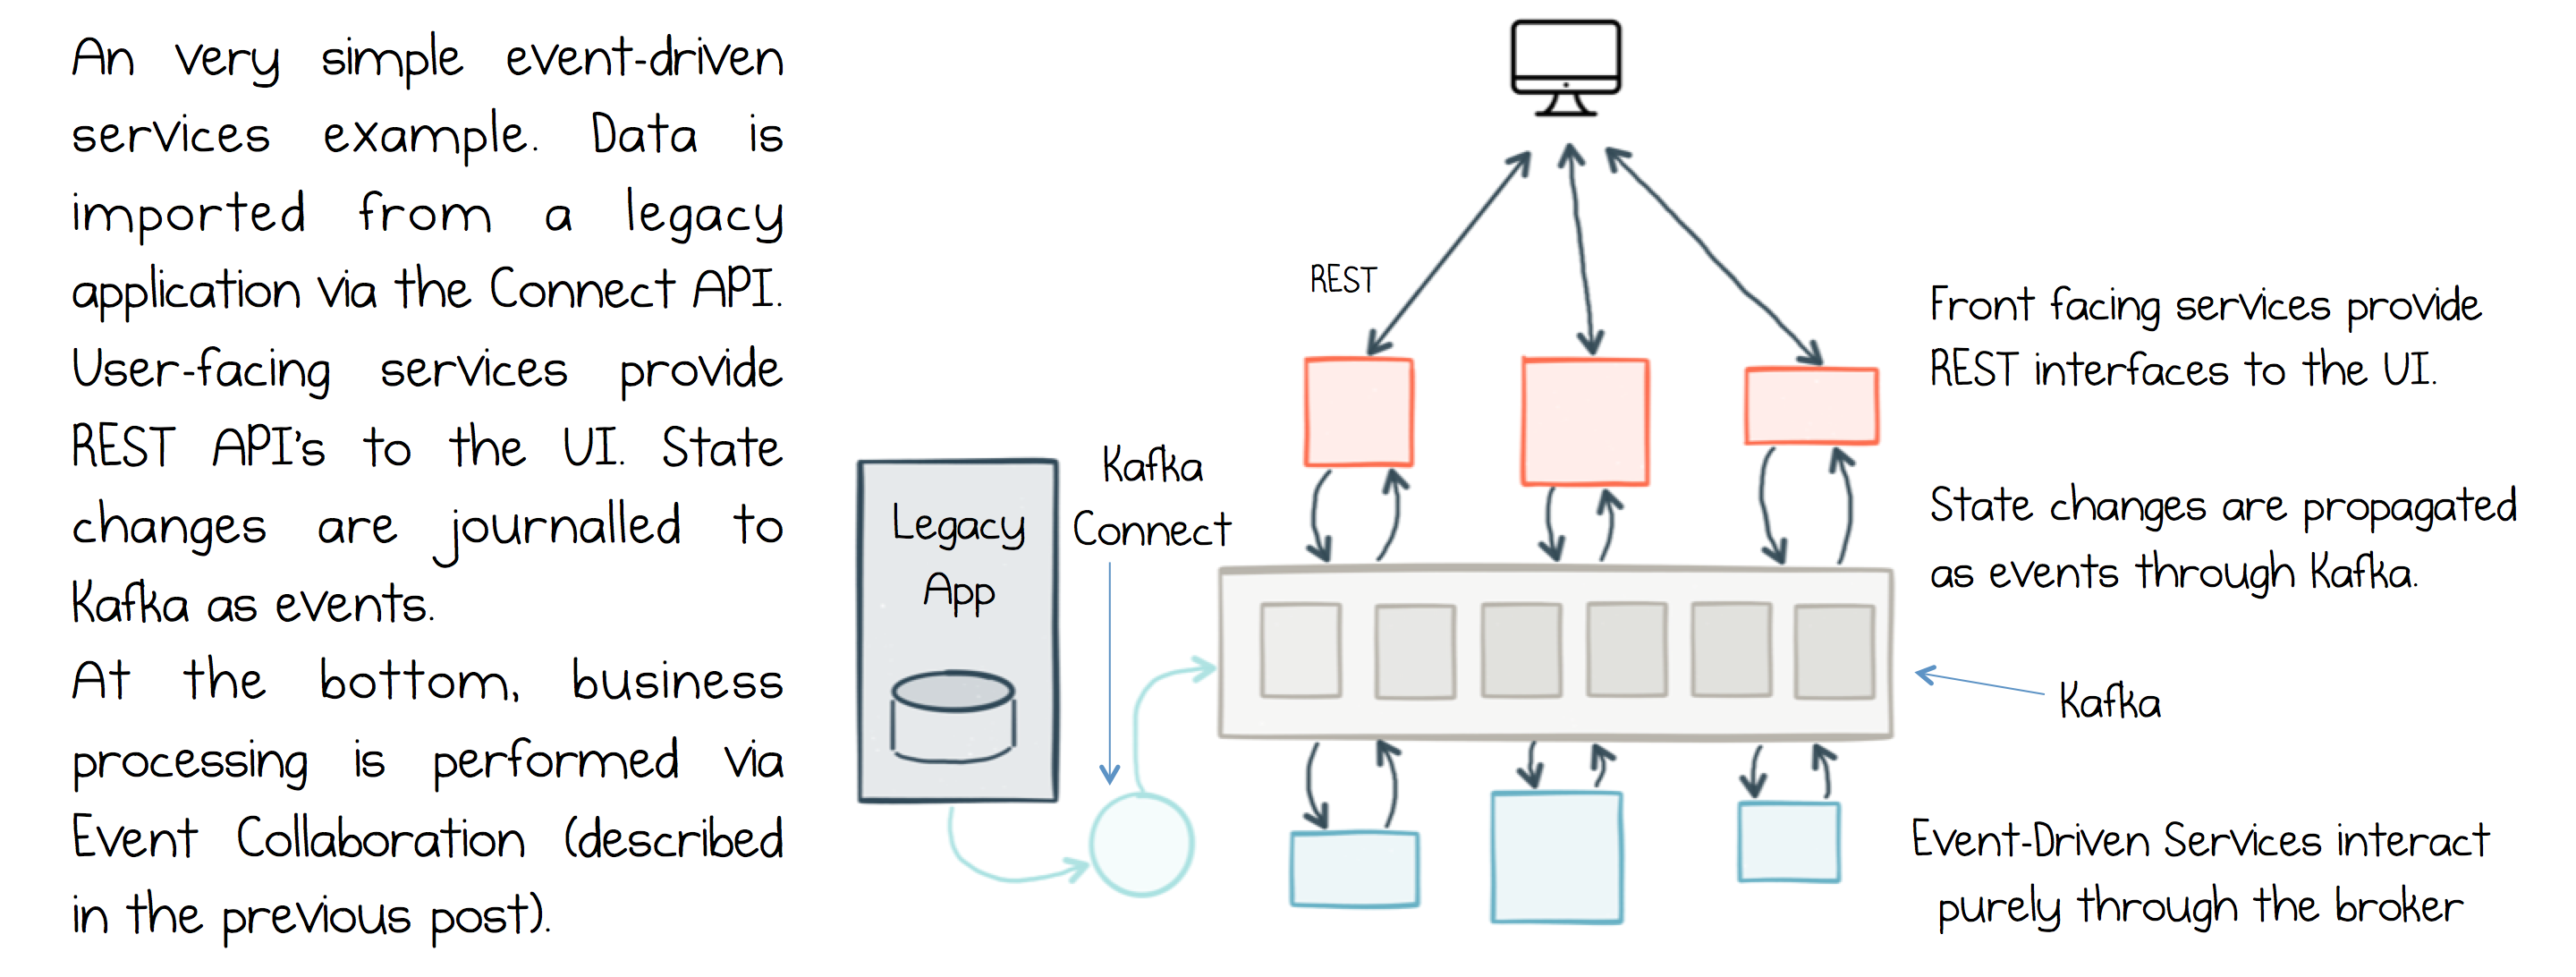 Apache Kafka As An Event Driven Backbone For Service Architectures